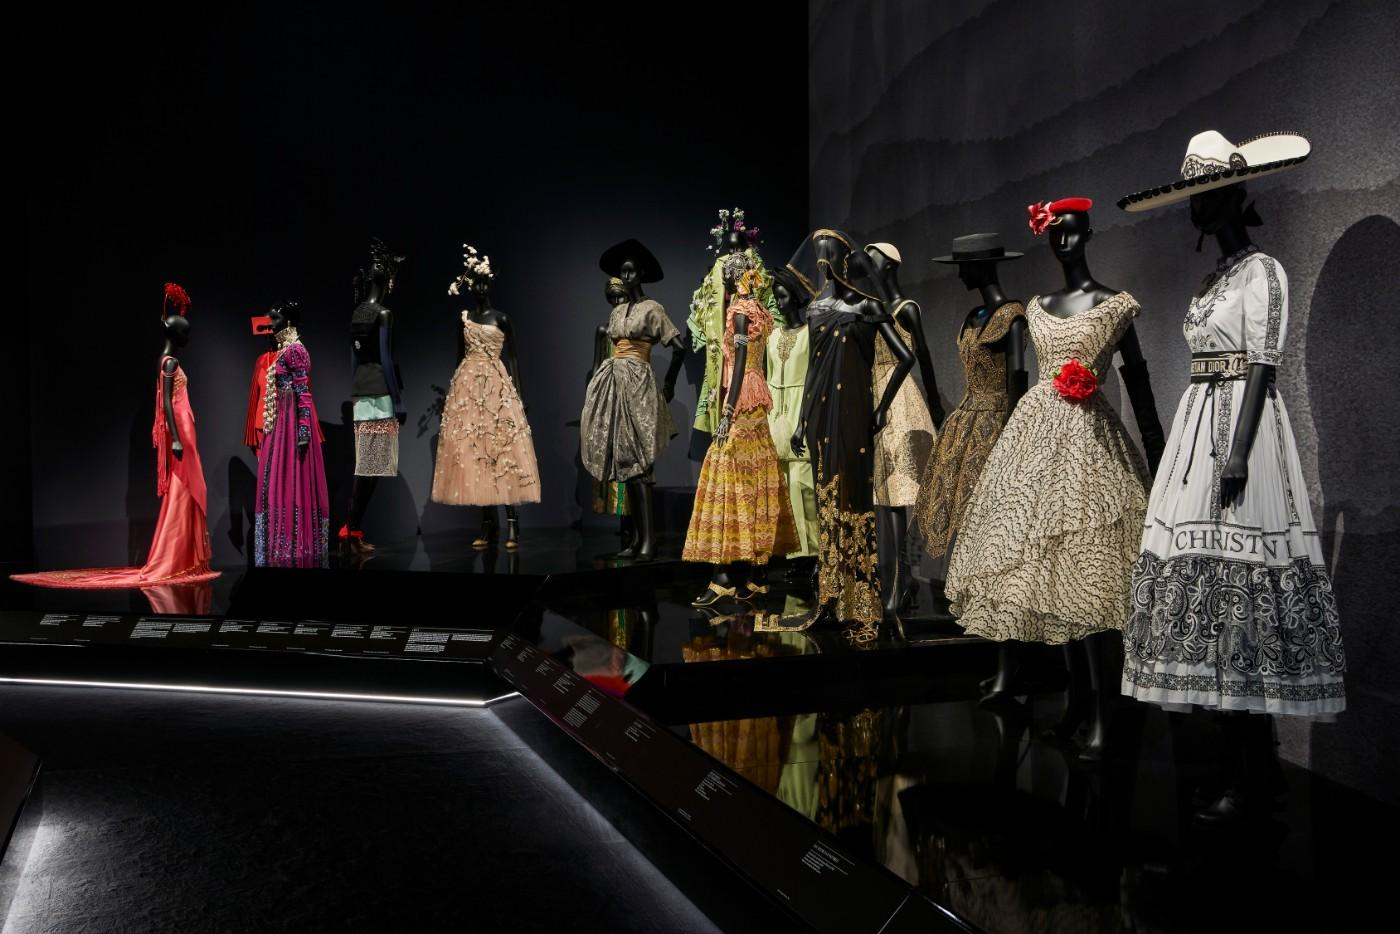 The V&A's Christian Dior Designer of Dreams exhibition, Travels section